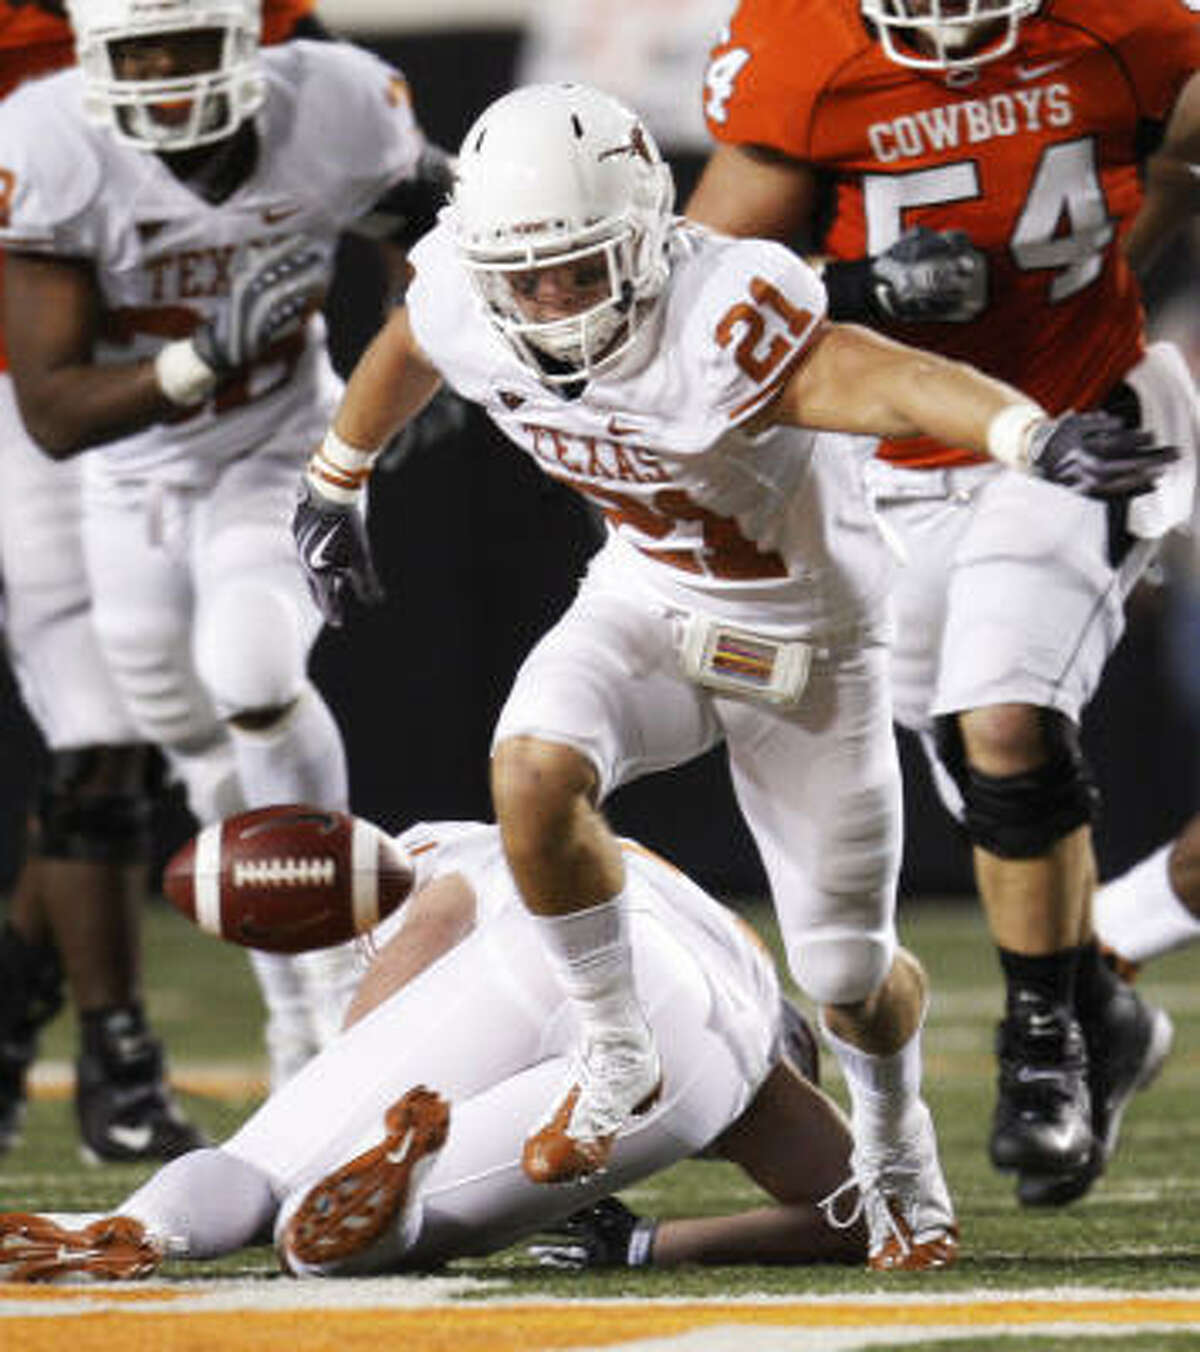 Longhorns safety Blake Gideon (21) and his teammates are determined to maintain their focus.